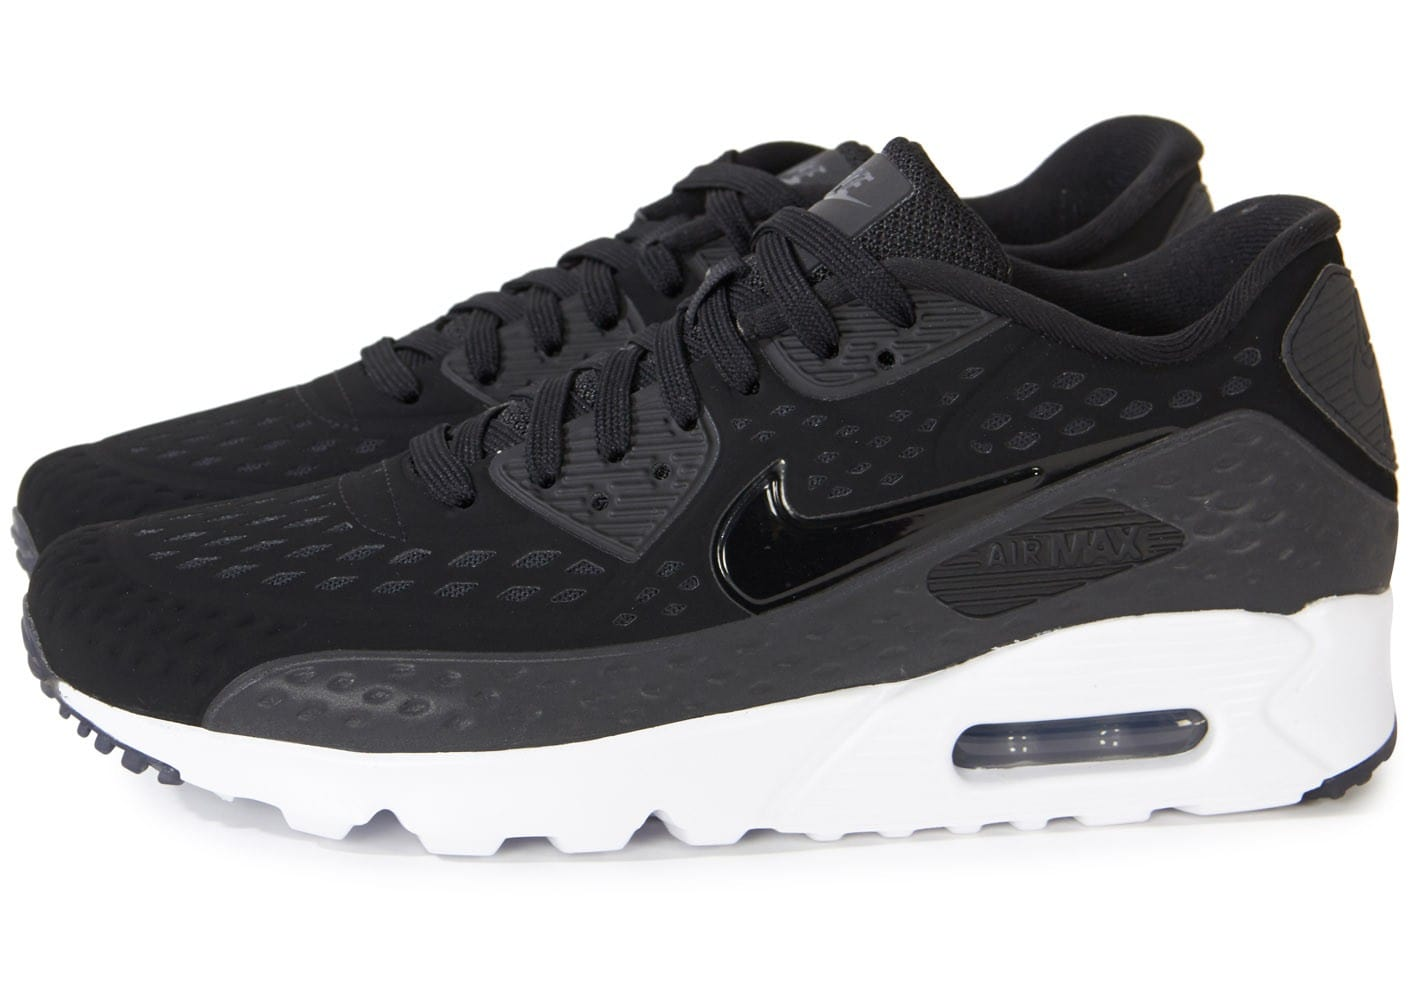 Nike Air Max 90 Ultra Br Noire Chaussures Baskets homme